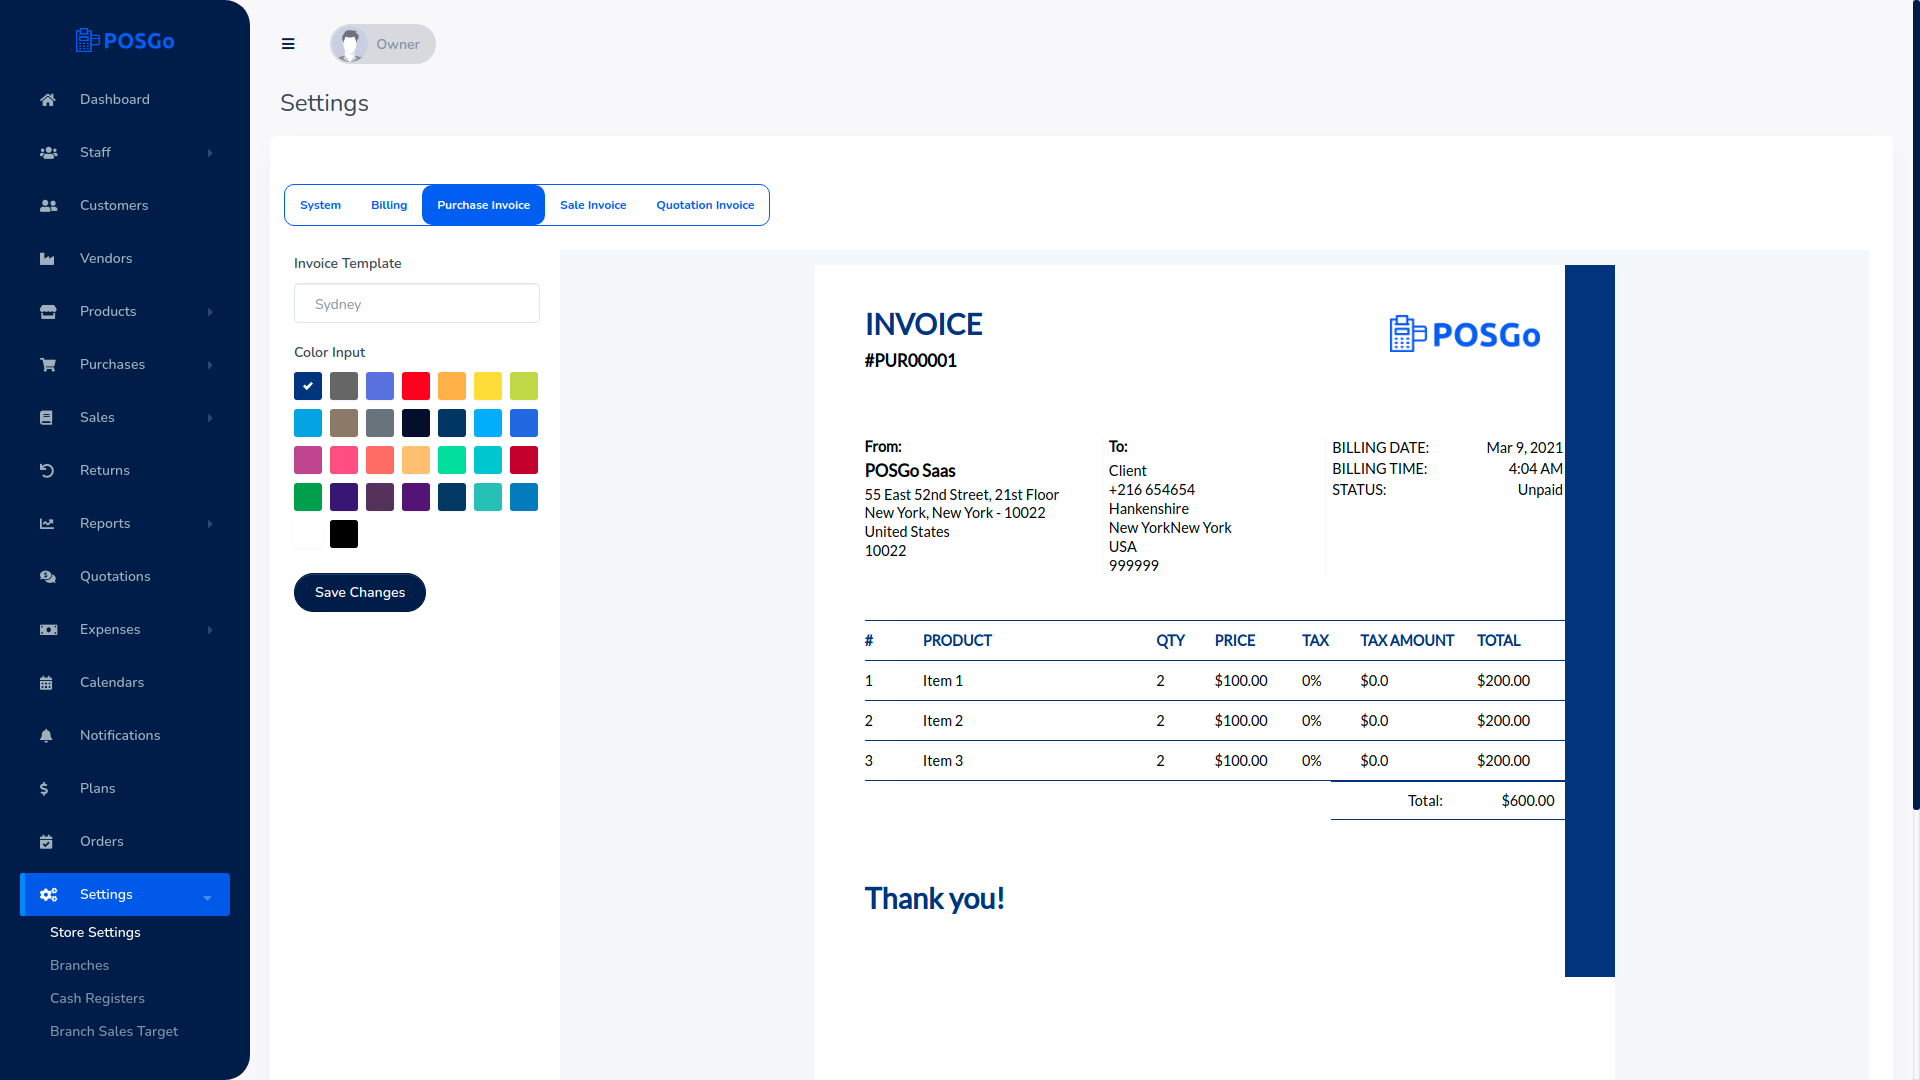 POSGo SaaS - Purchase and Sales Management Tool - 12